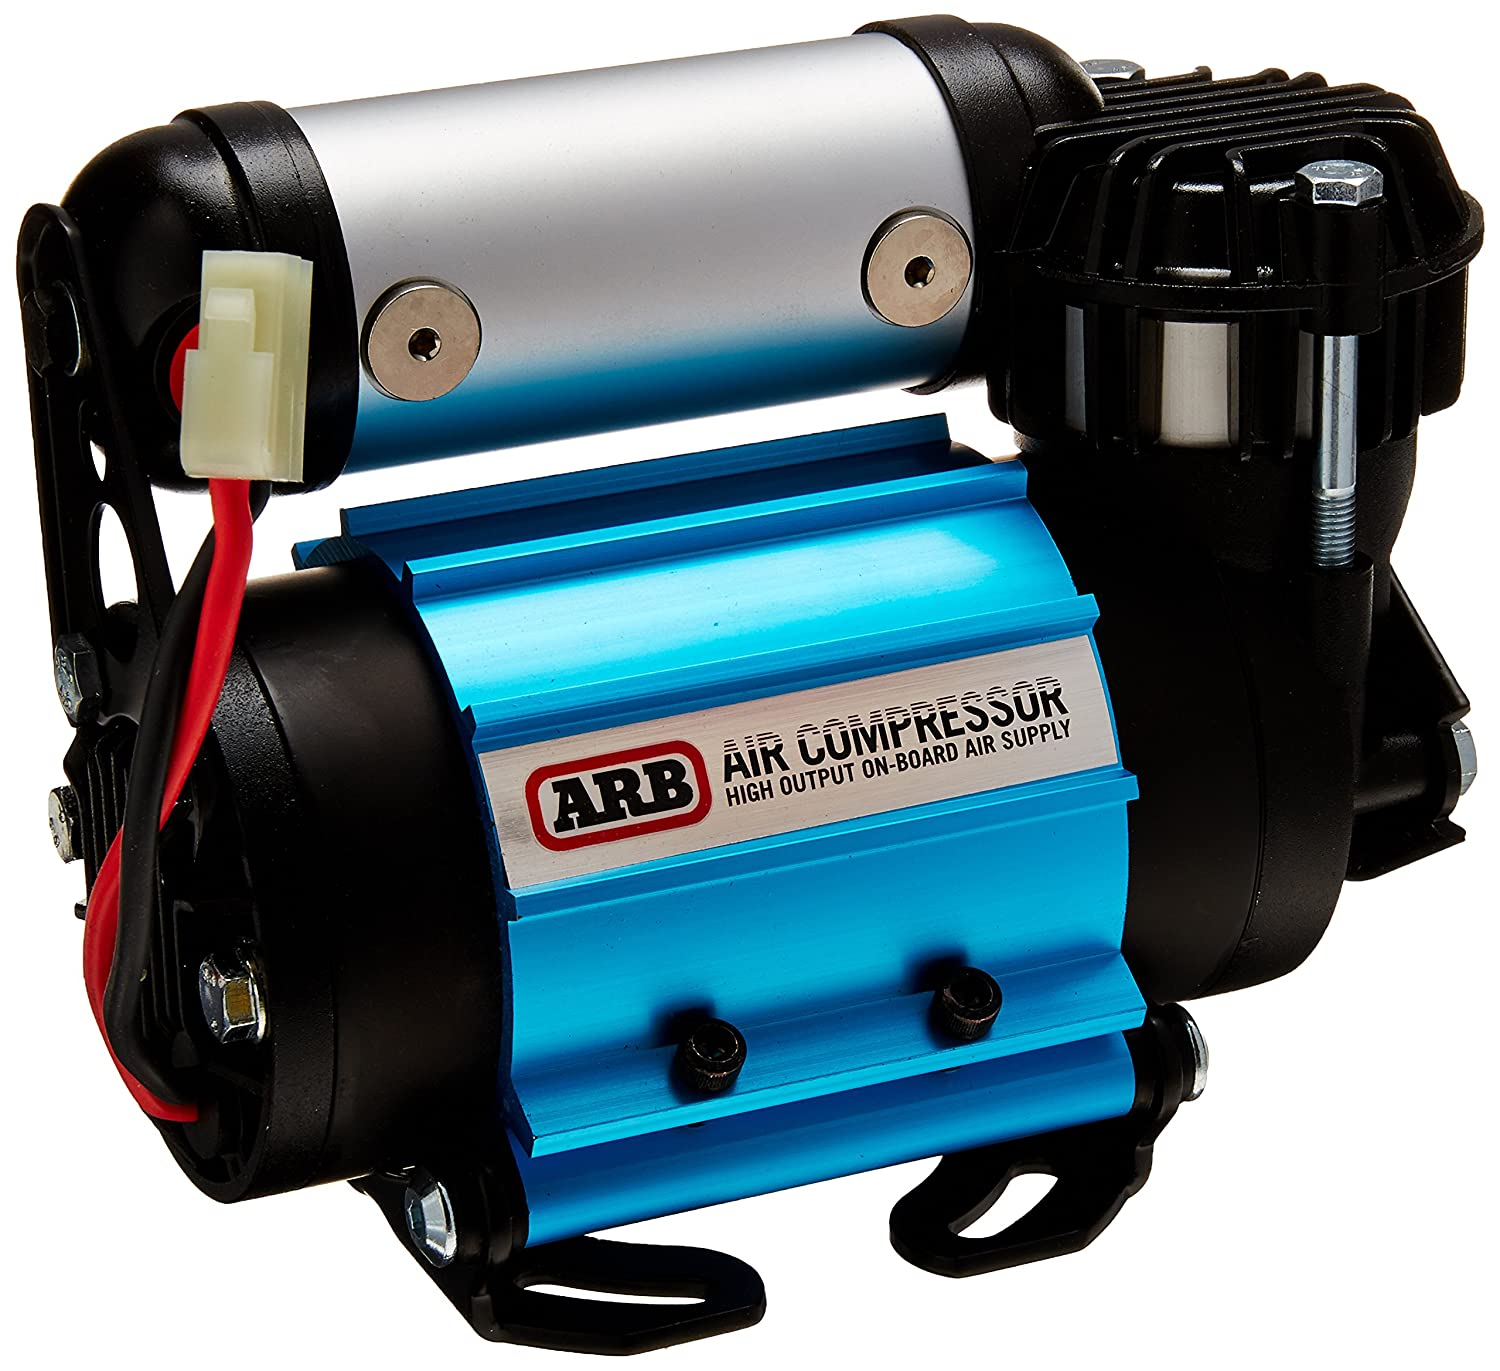 Amazon.com: ARB CKMA12 Air Compressor High Output On-Board 12V Air ...